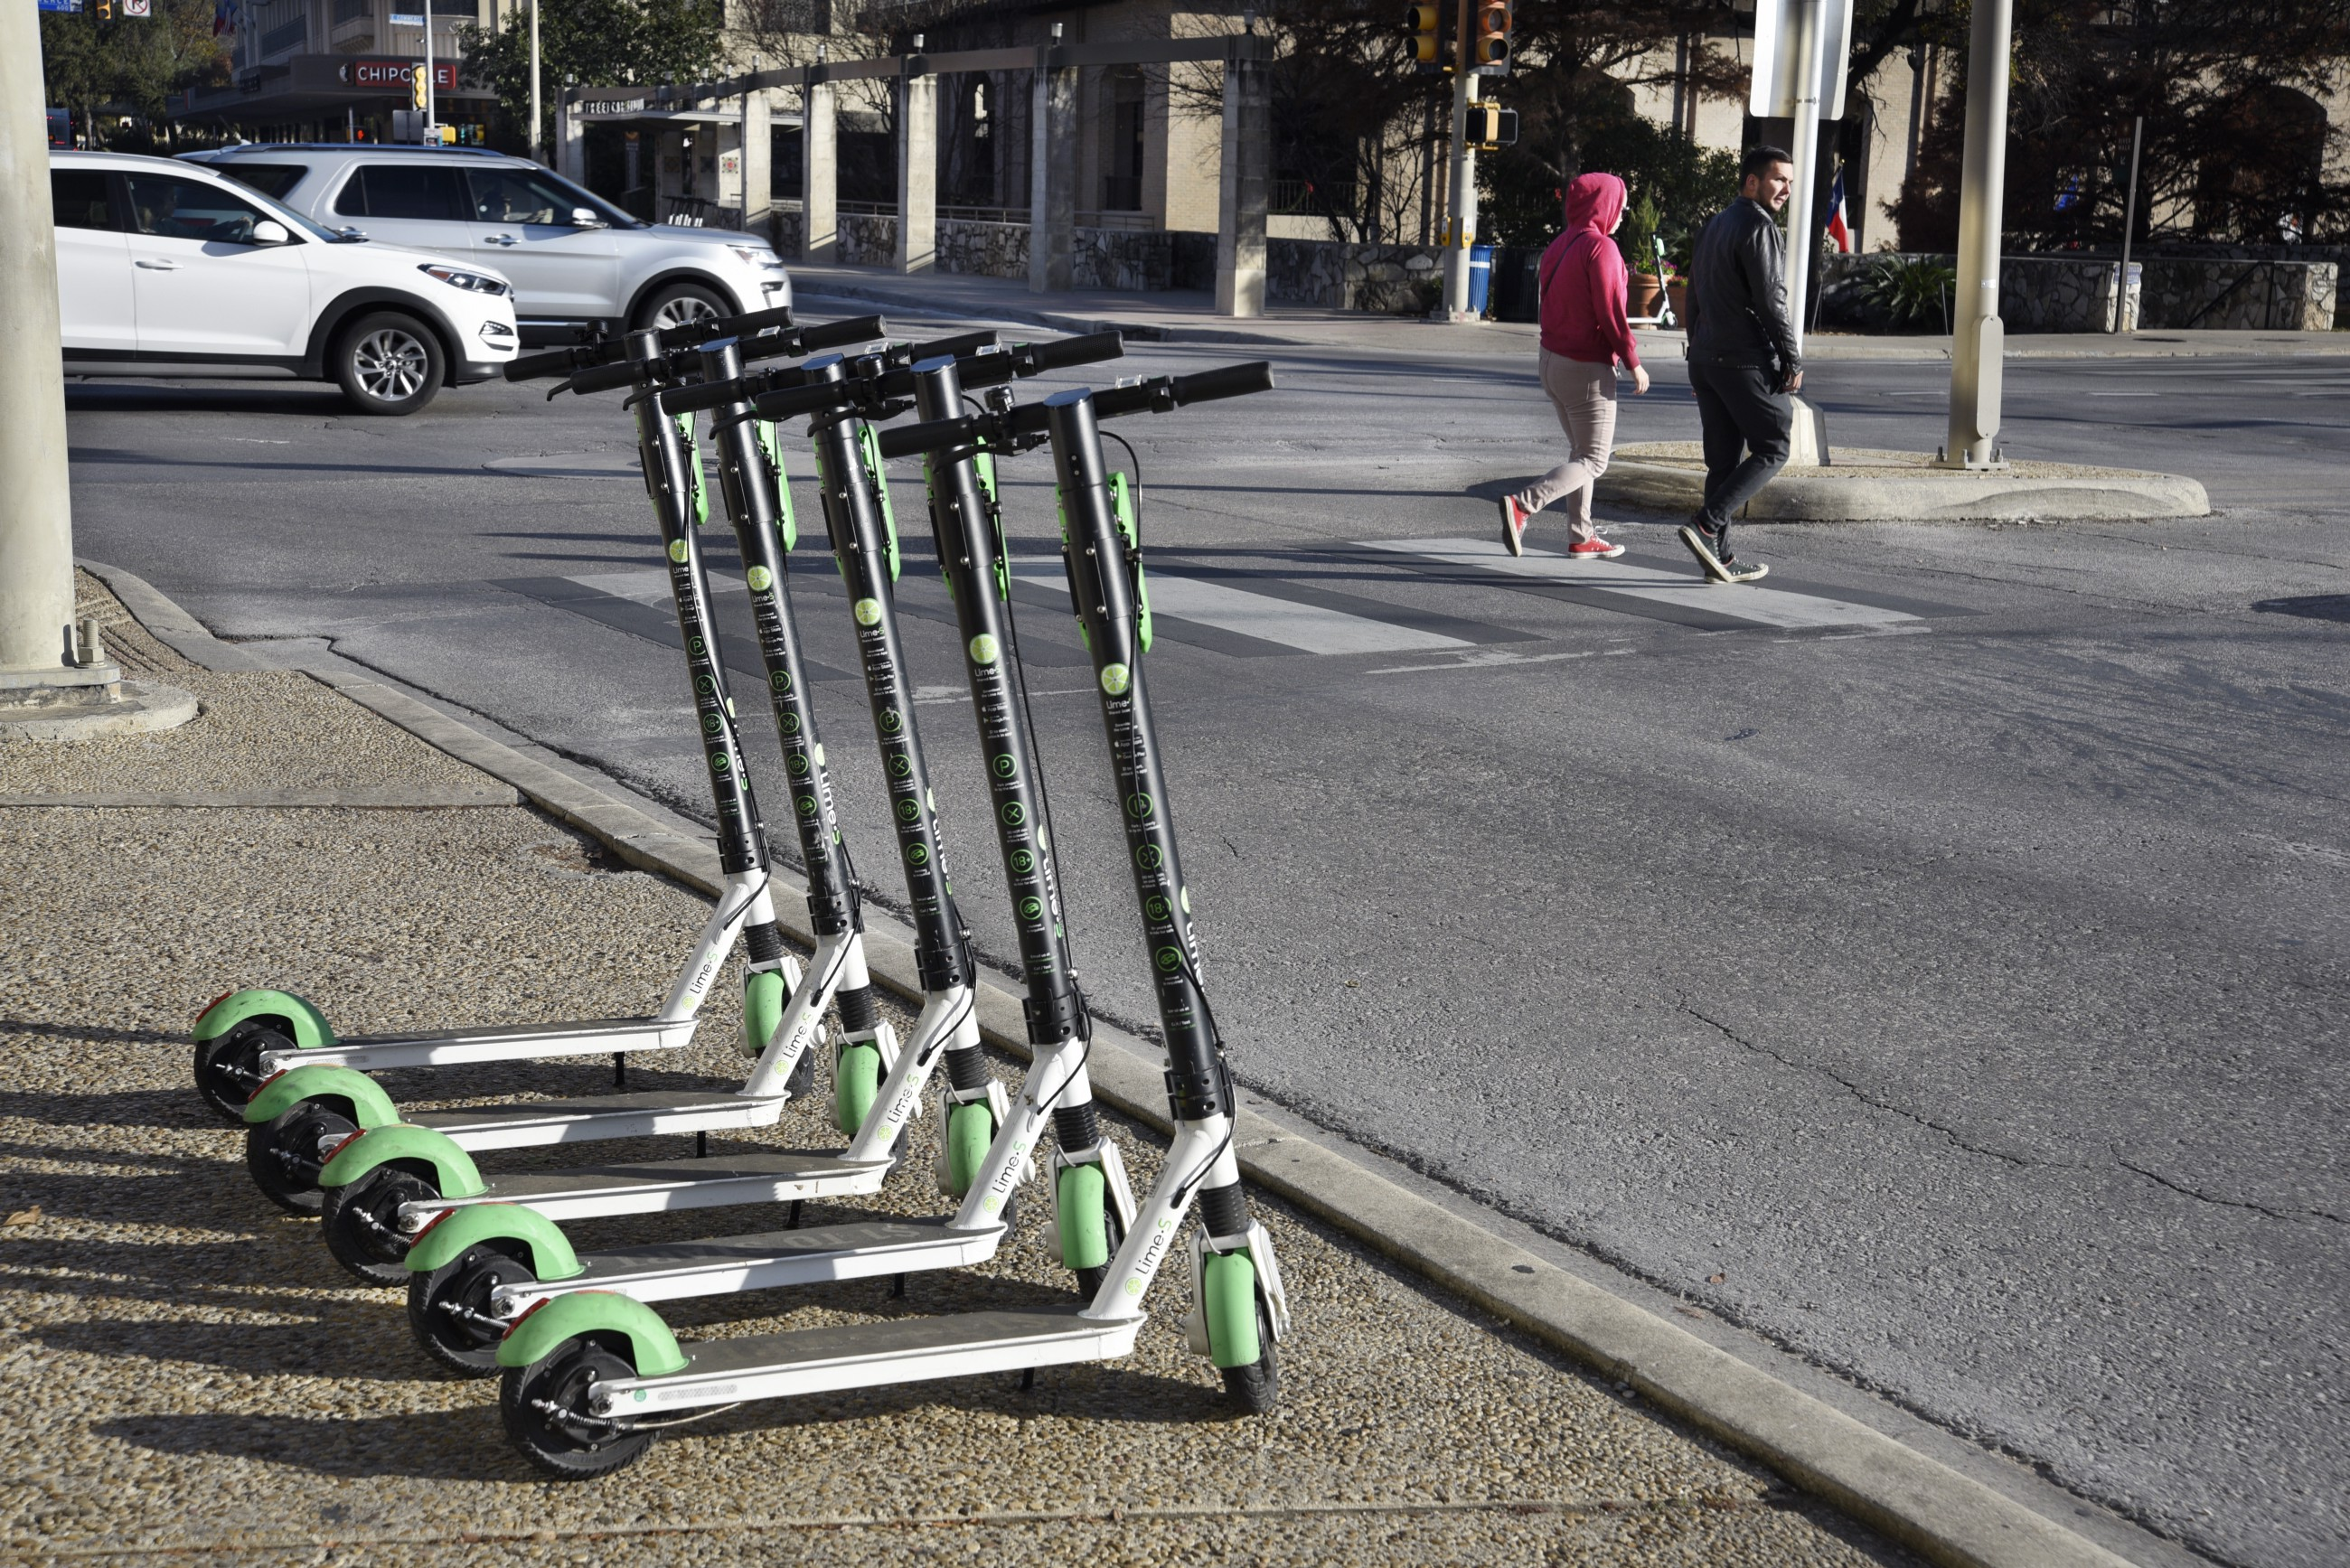 medium.com - Paris Marx - Self-Driving Cars Are Out. Micromobility Is In. - Member Feature Stories